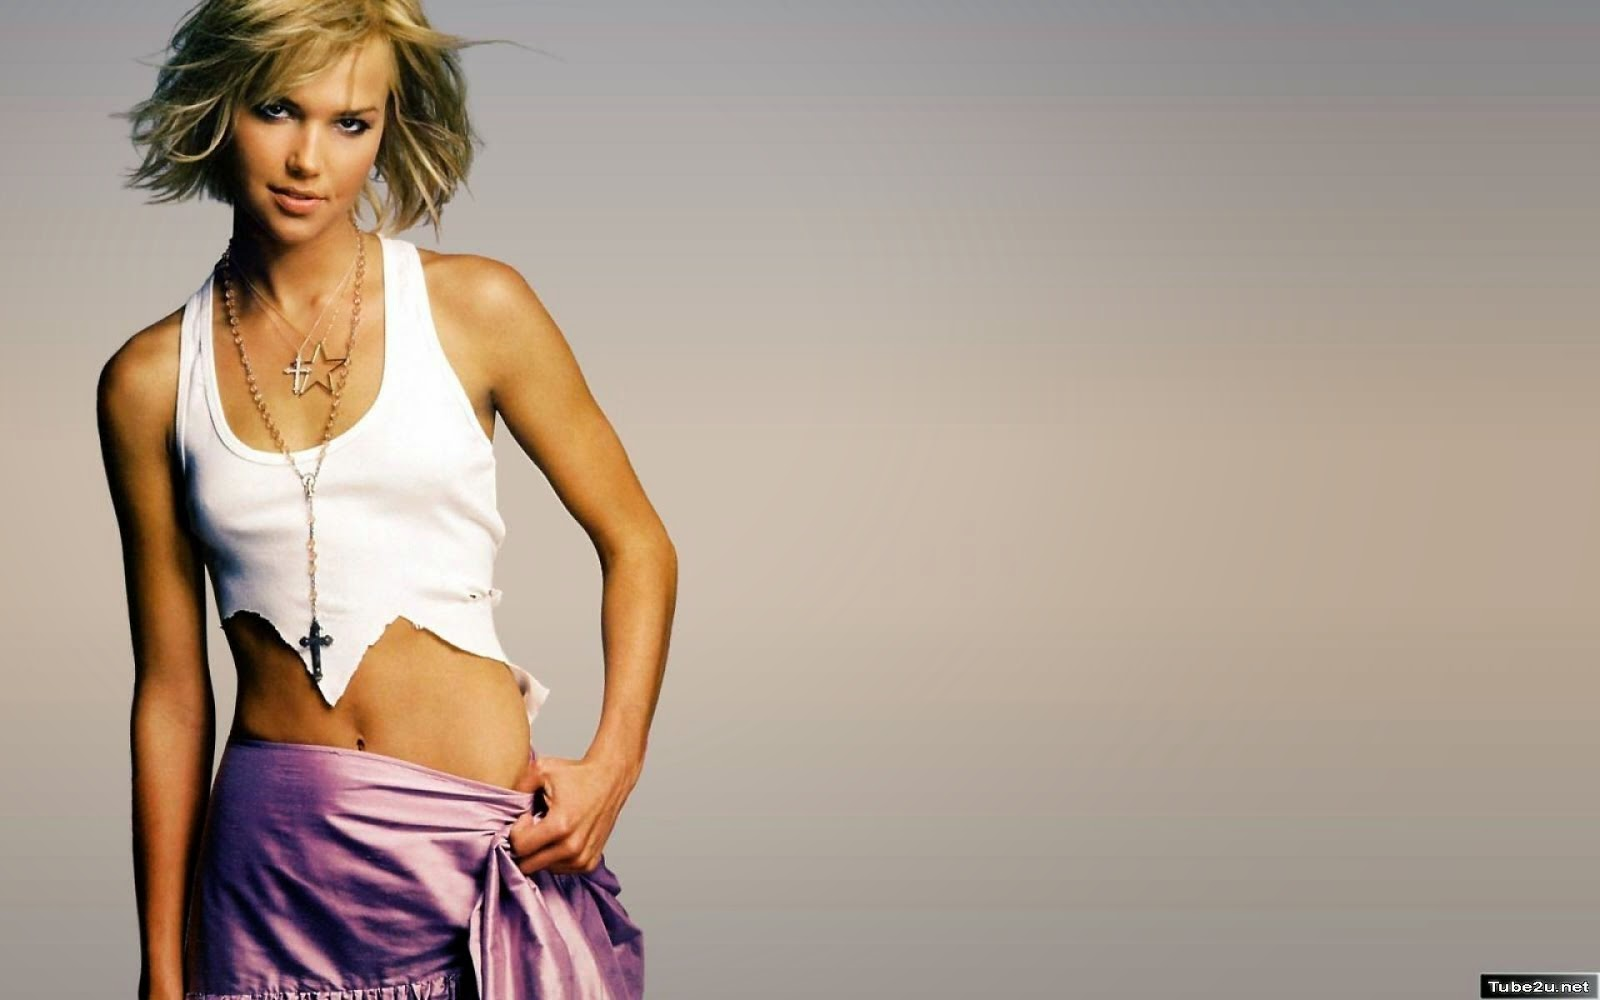 Arielle Kebbel Hot Sey American Model Actress Pictures Caroline